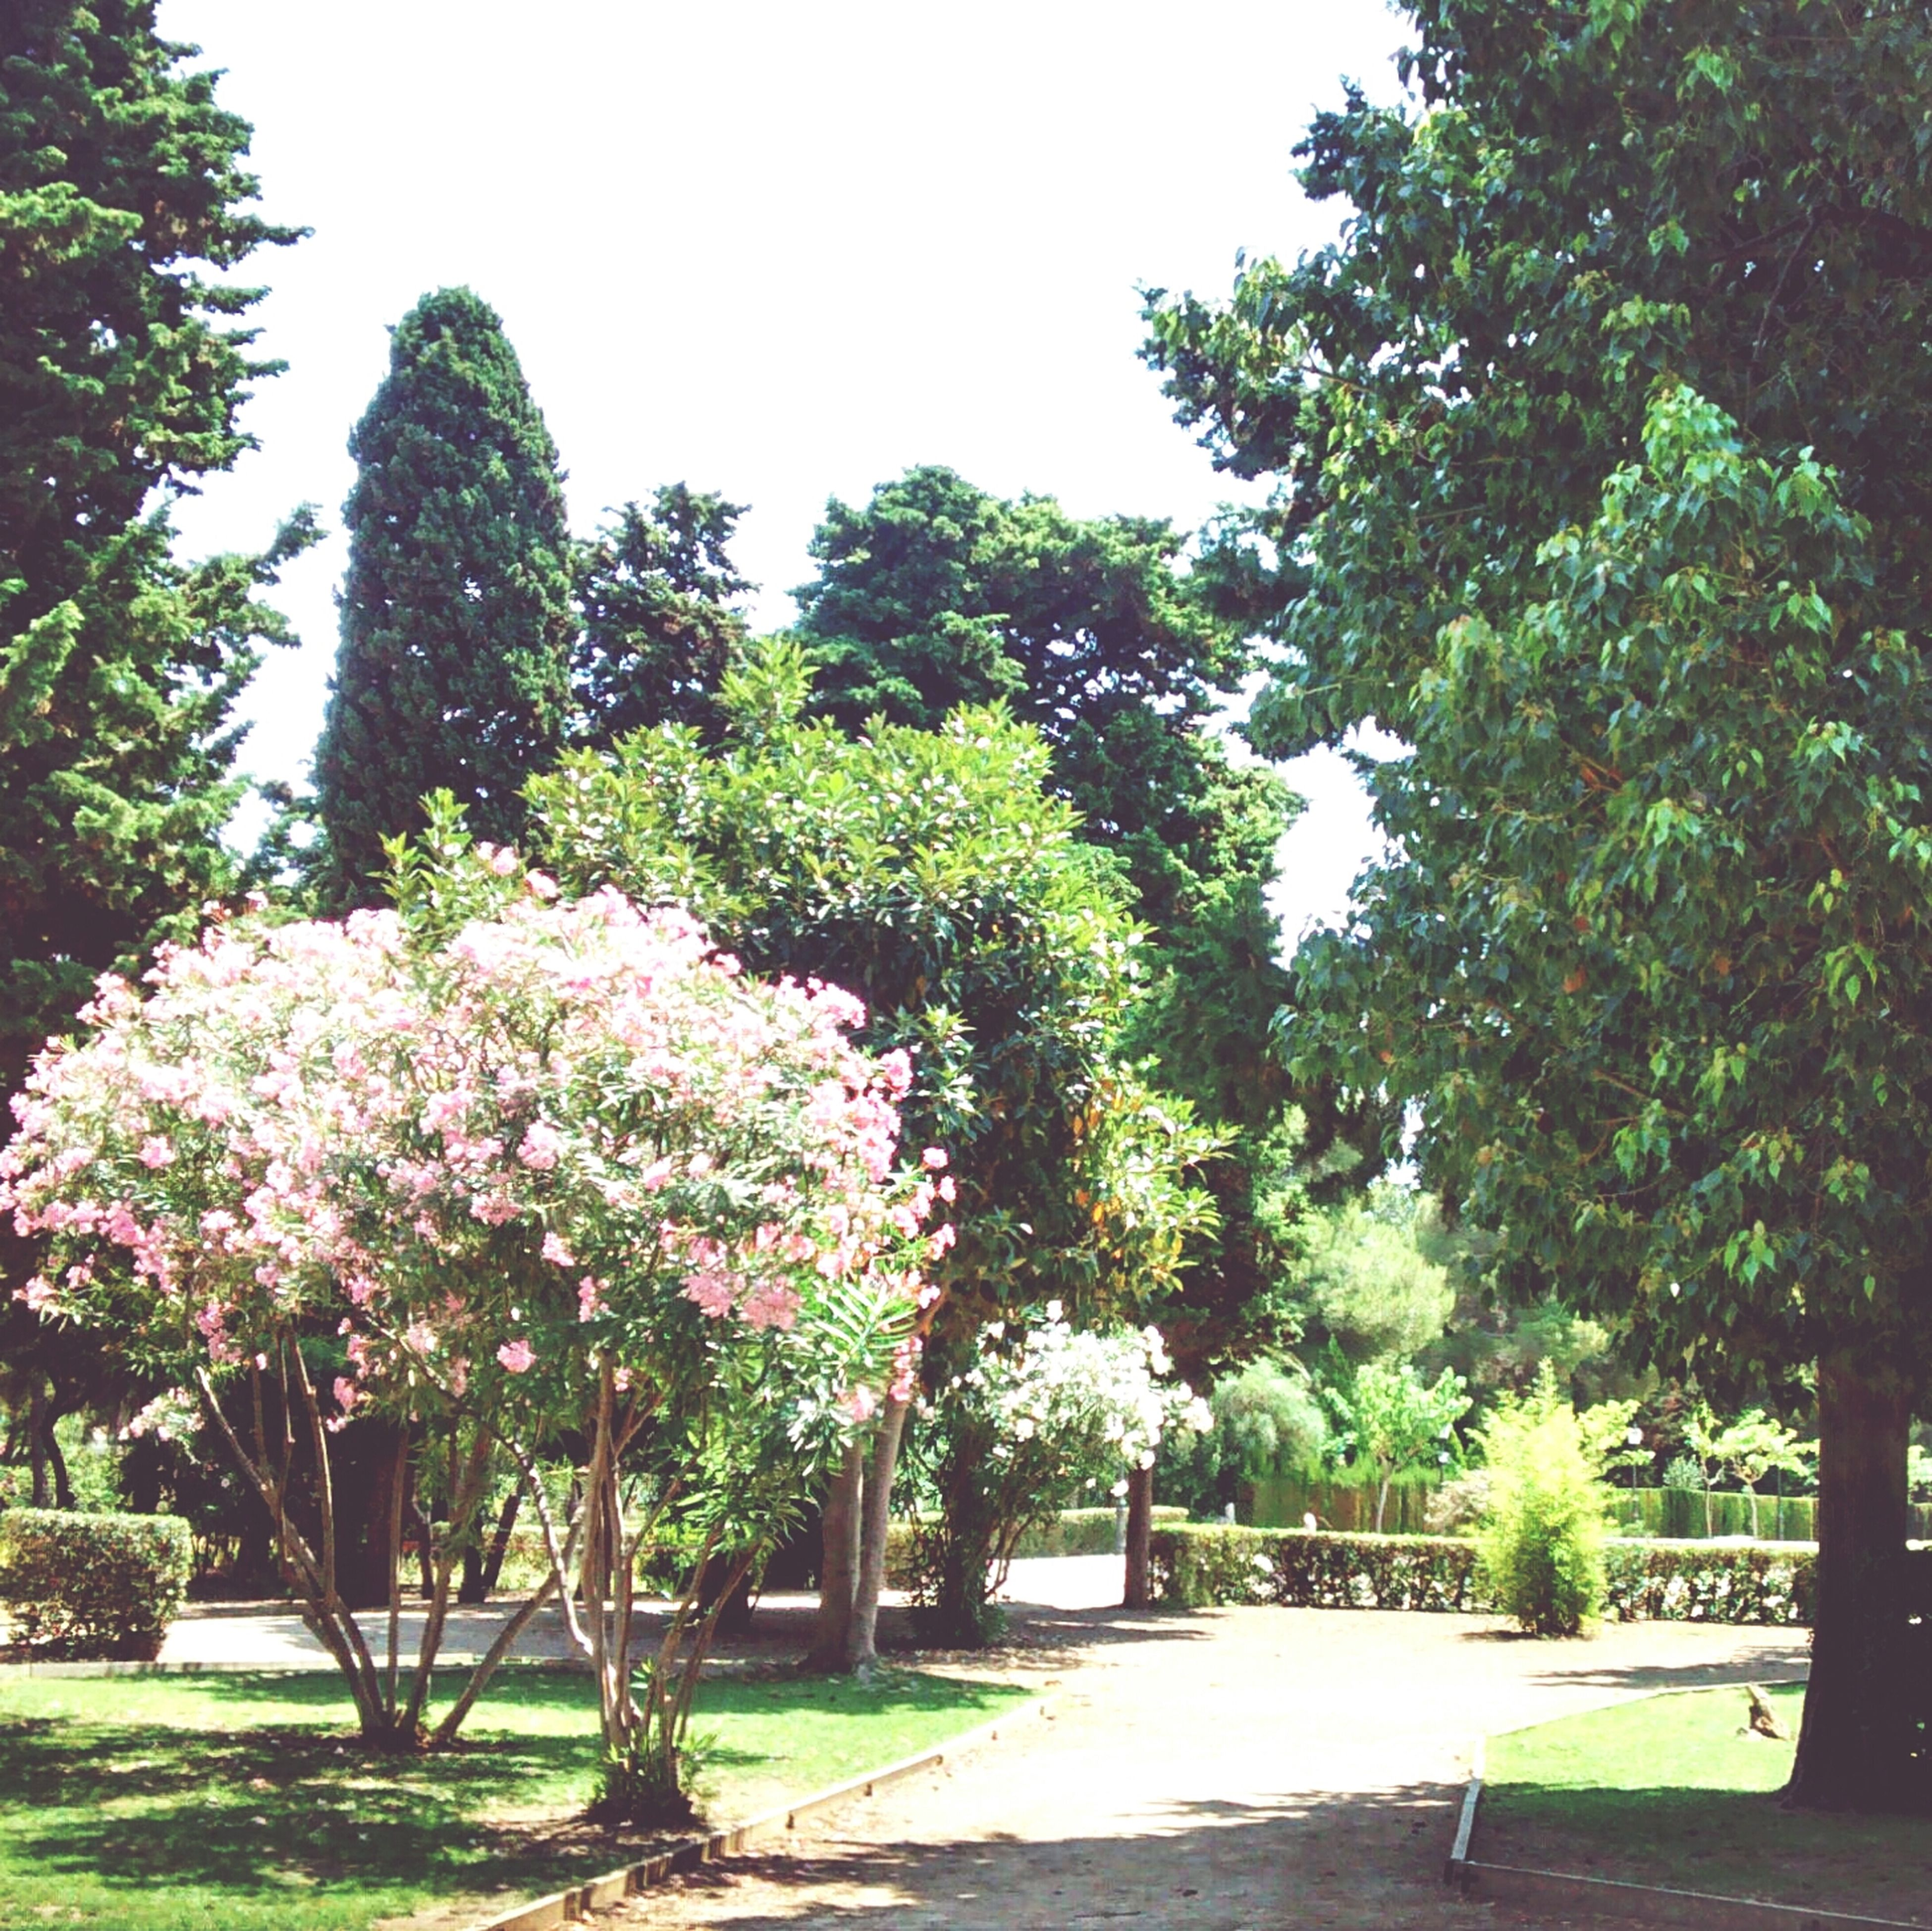 tree, flower, growth, park - man made space, beauty in nature, nature, the way forward, freshness, footpath, tranquility, green color, sunlight, park, branch, tranquil scene, day, clear sky, plant, blossom, formal garden